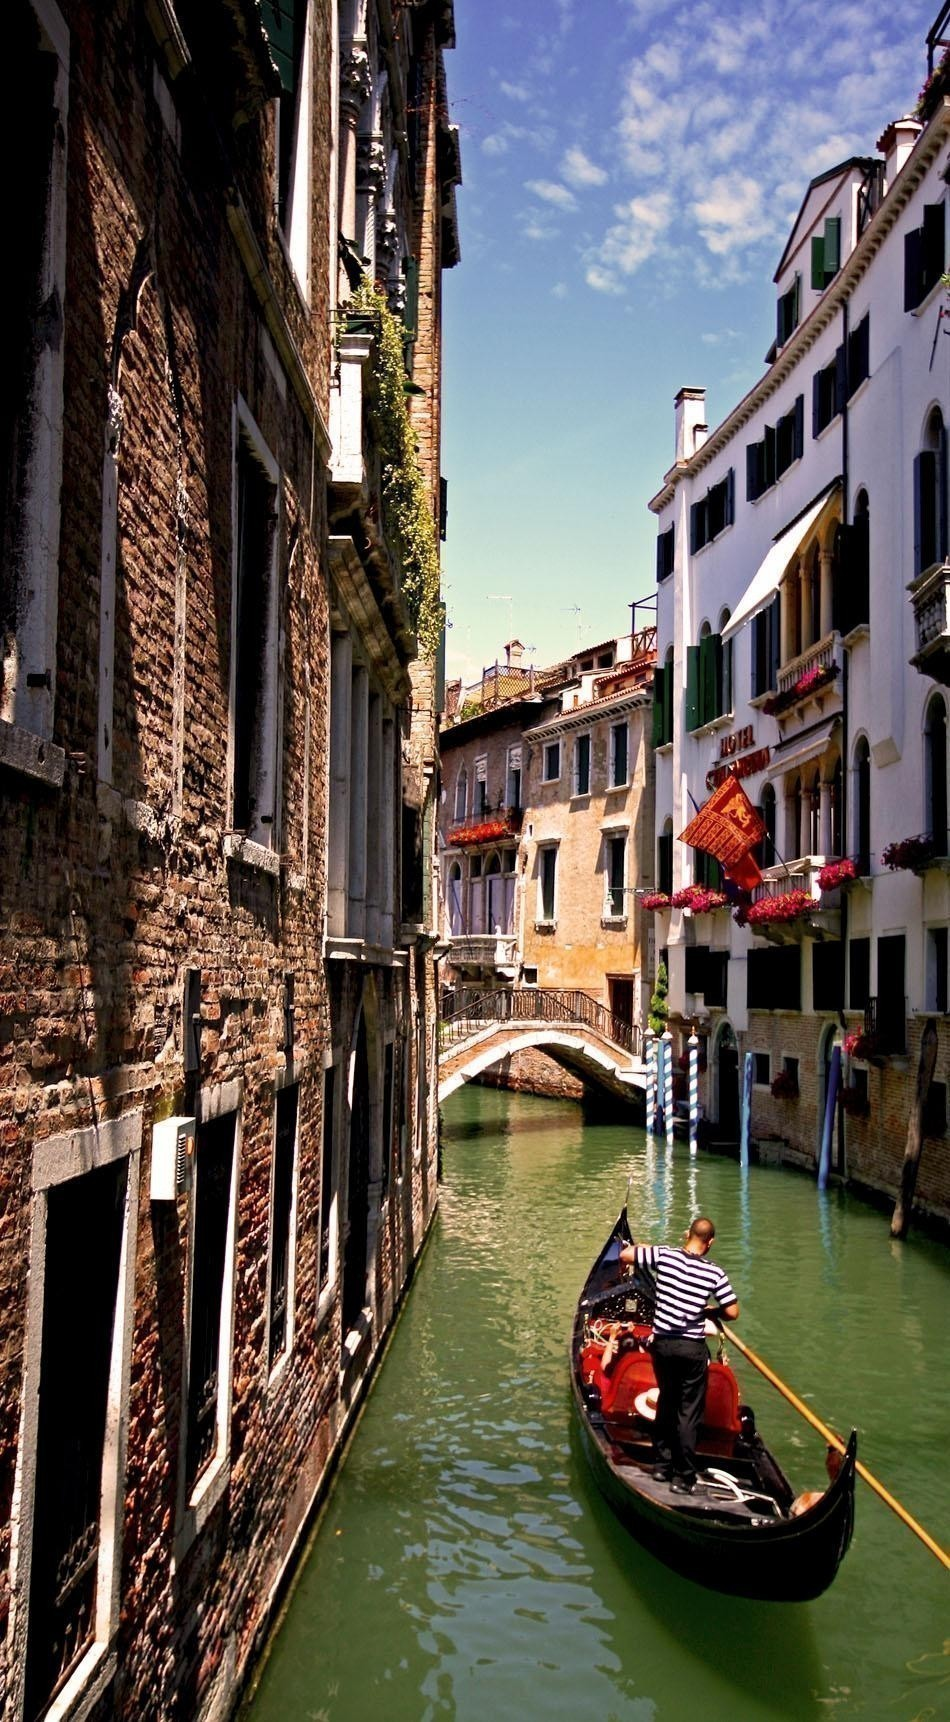 Take a Gondola Ride on Venice's Canals | Italy Travel Guide